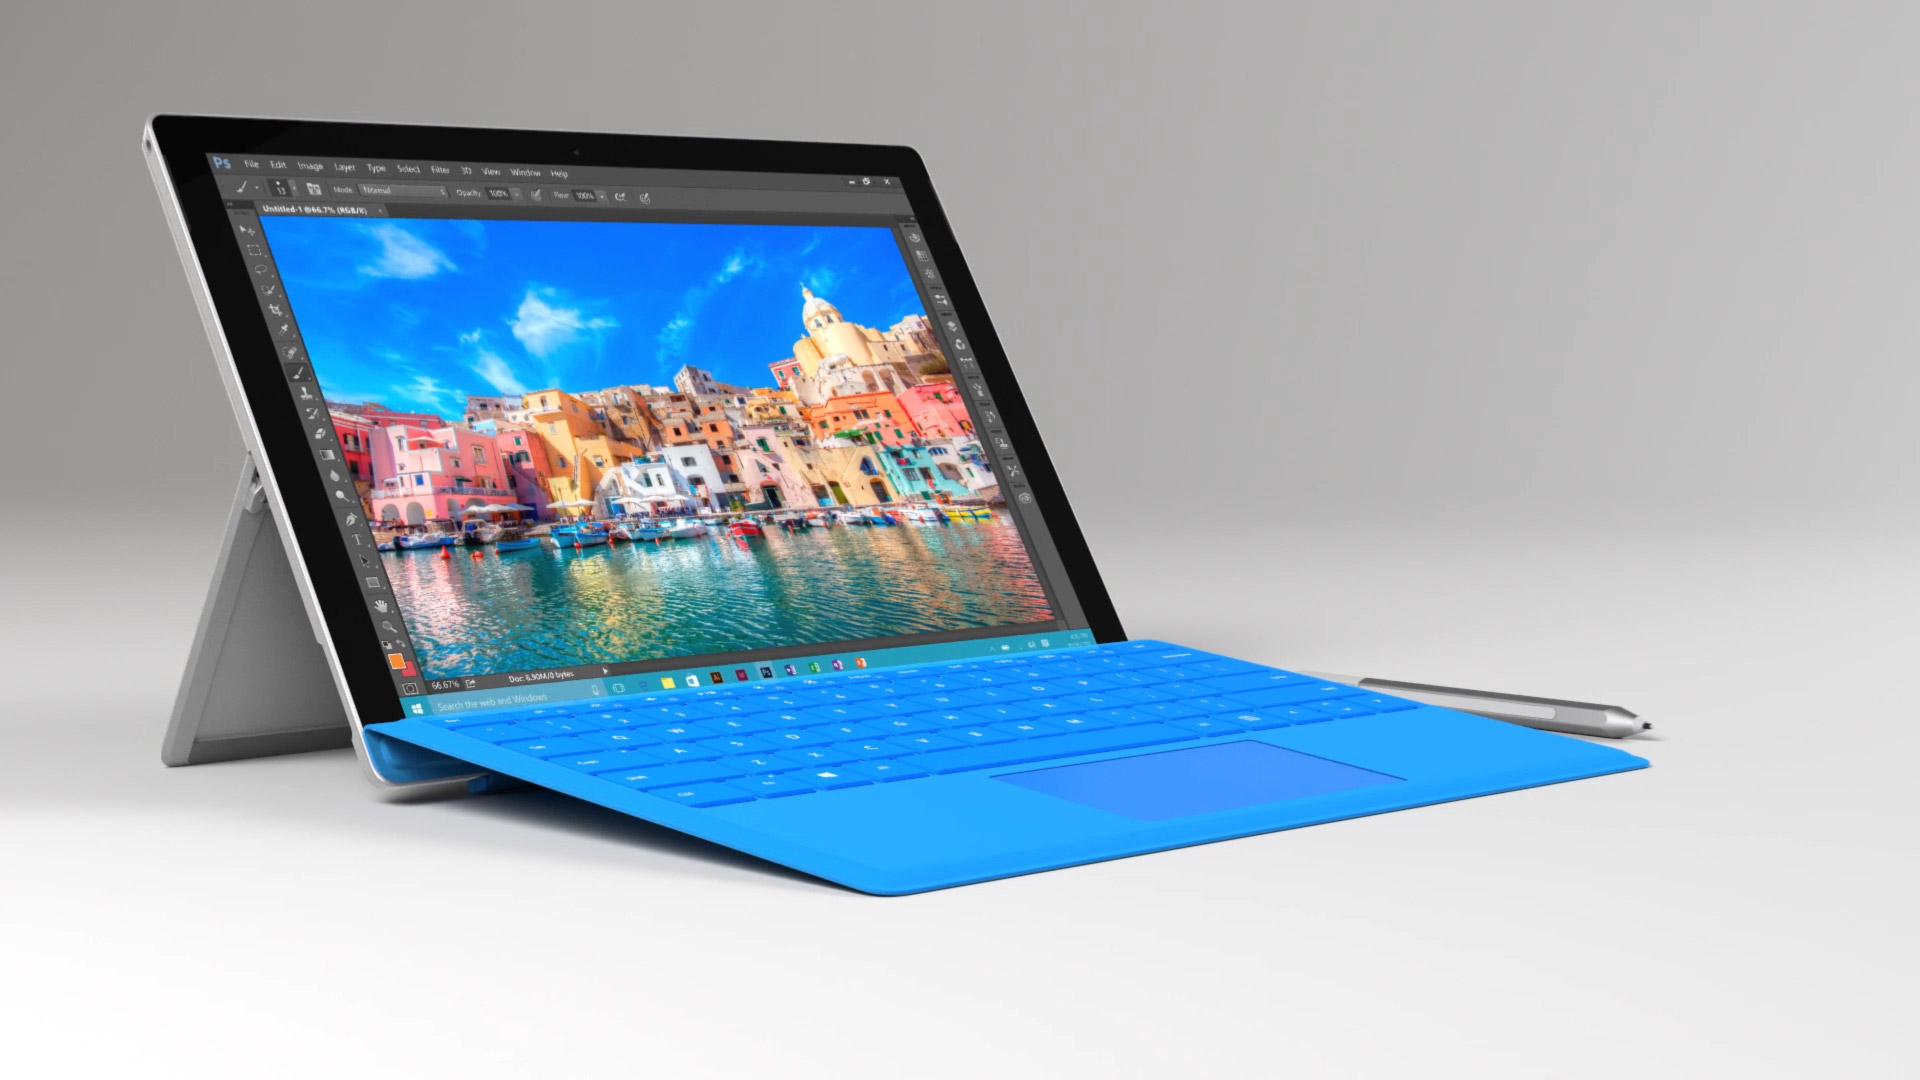 Image result for microsoft surface pro 4